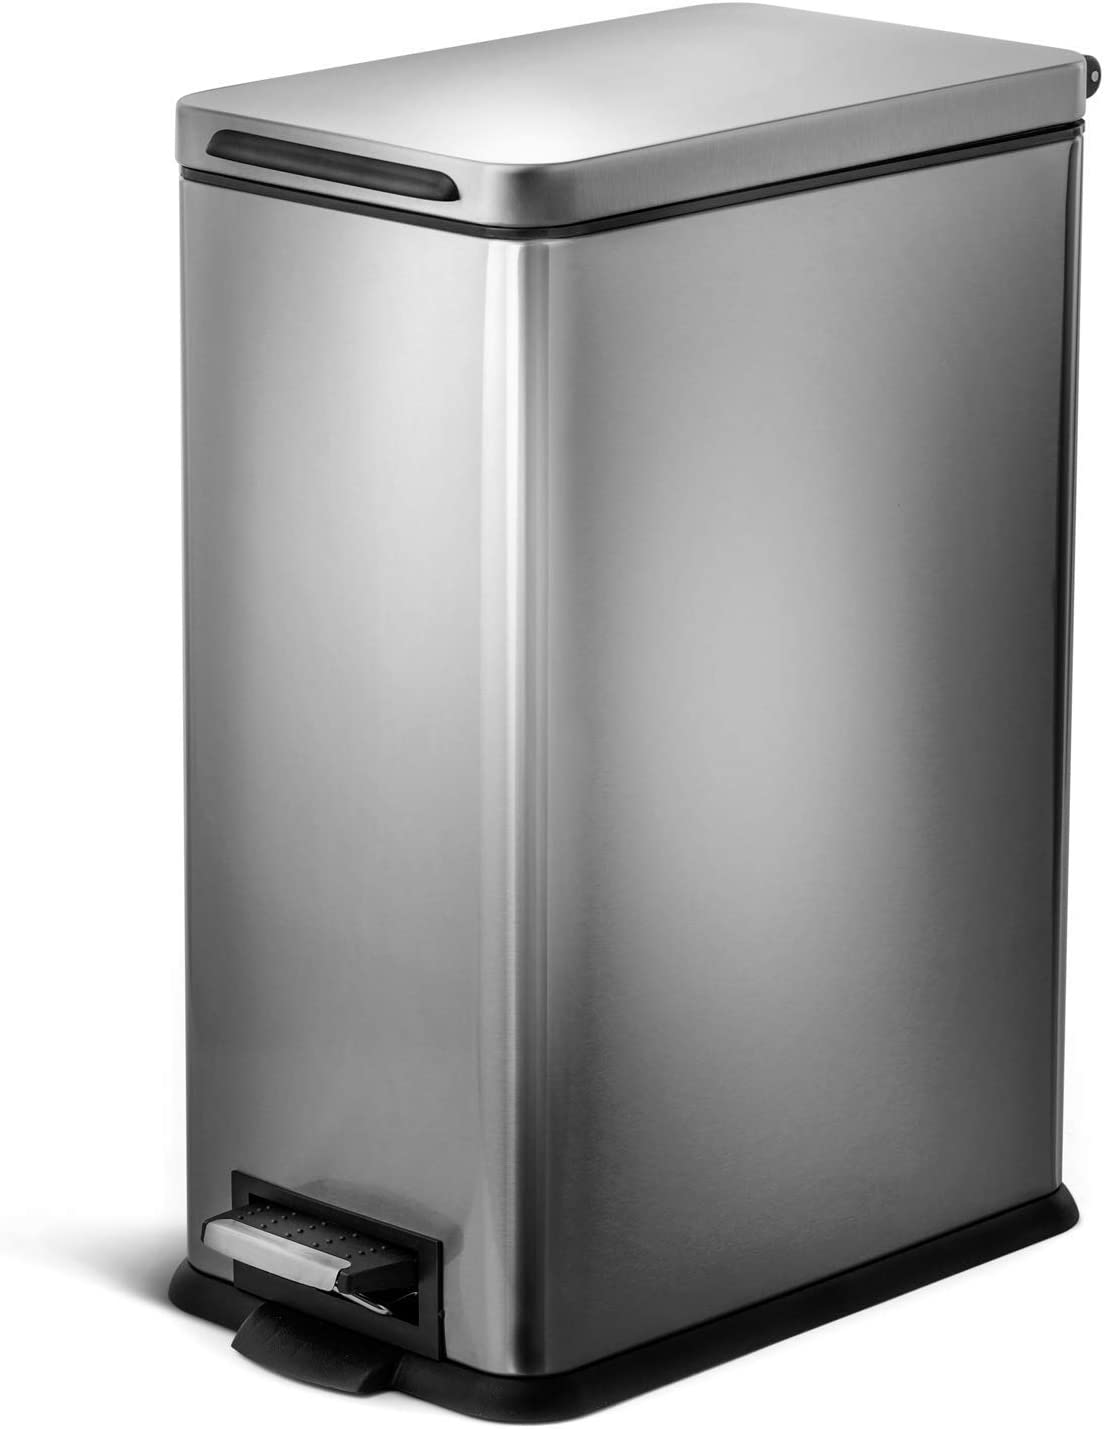 Home Zone Living VA41837A 30 Liter / 8 Gallon Stainless Steel Trash Can, Slim Rectangular, Pedal, Silver